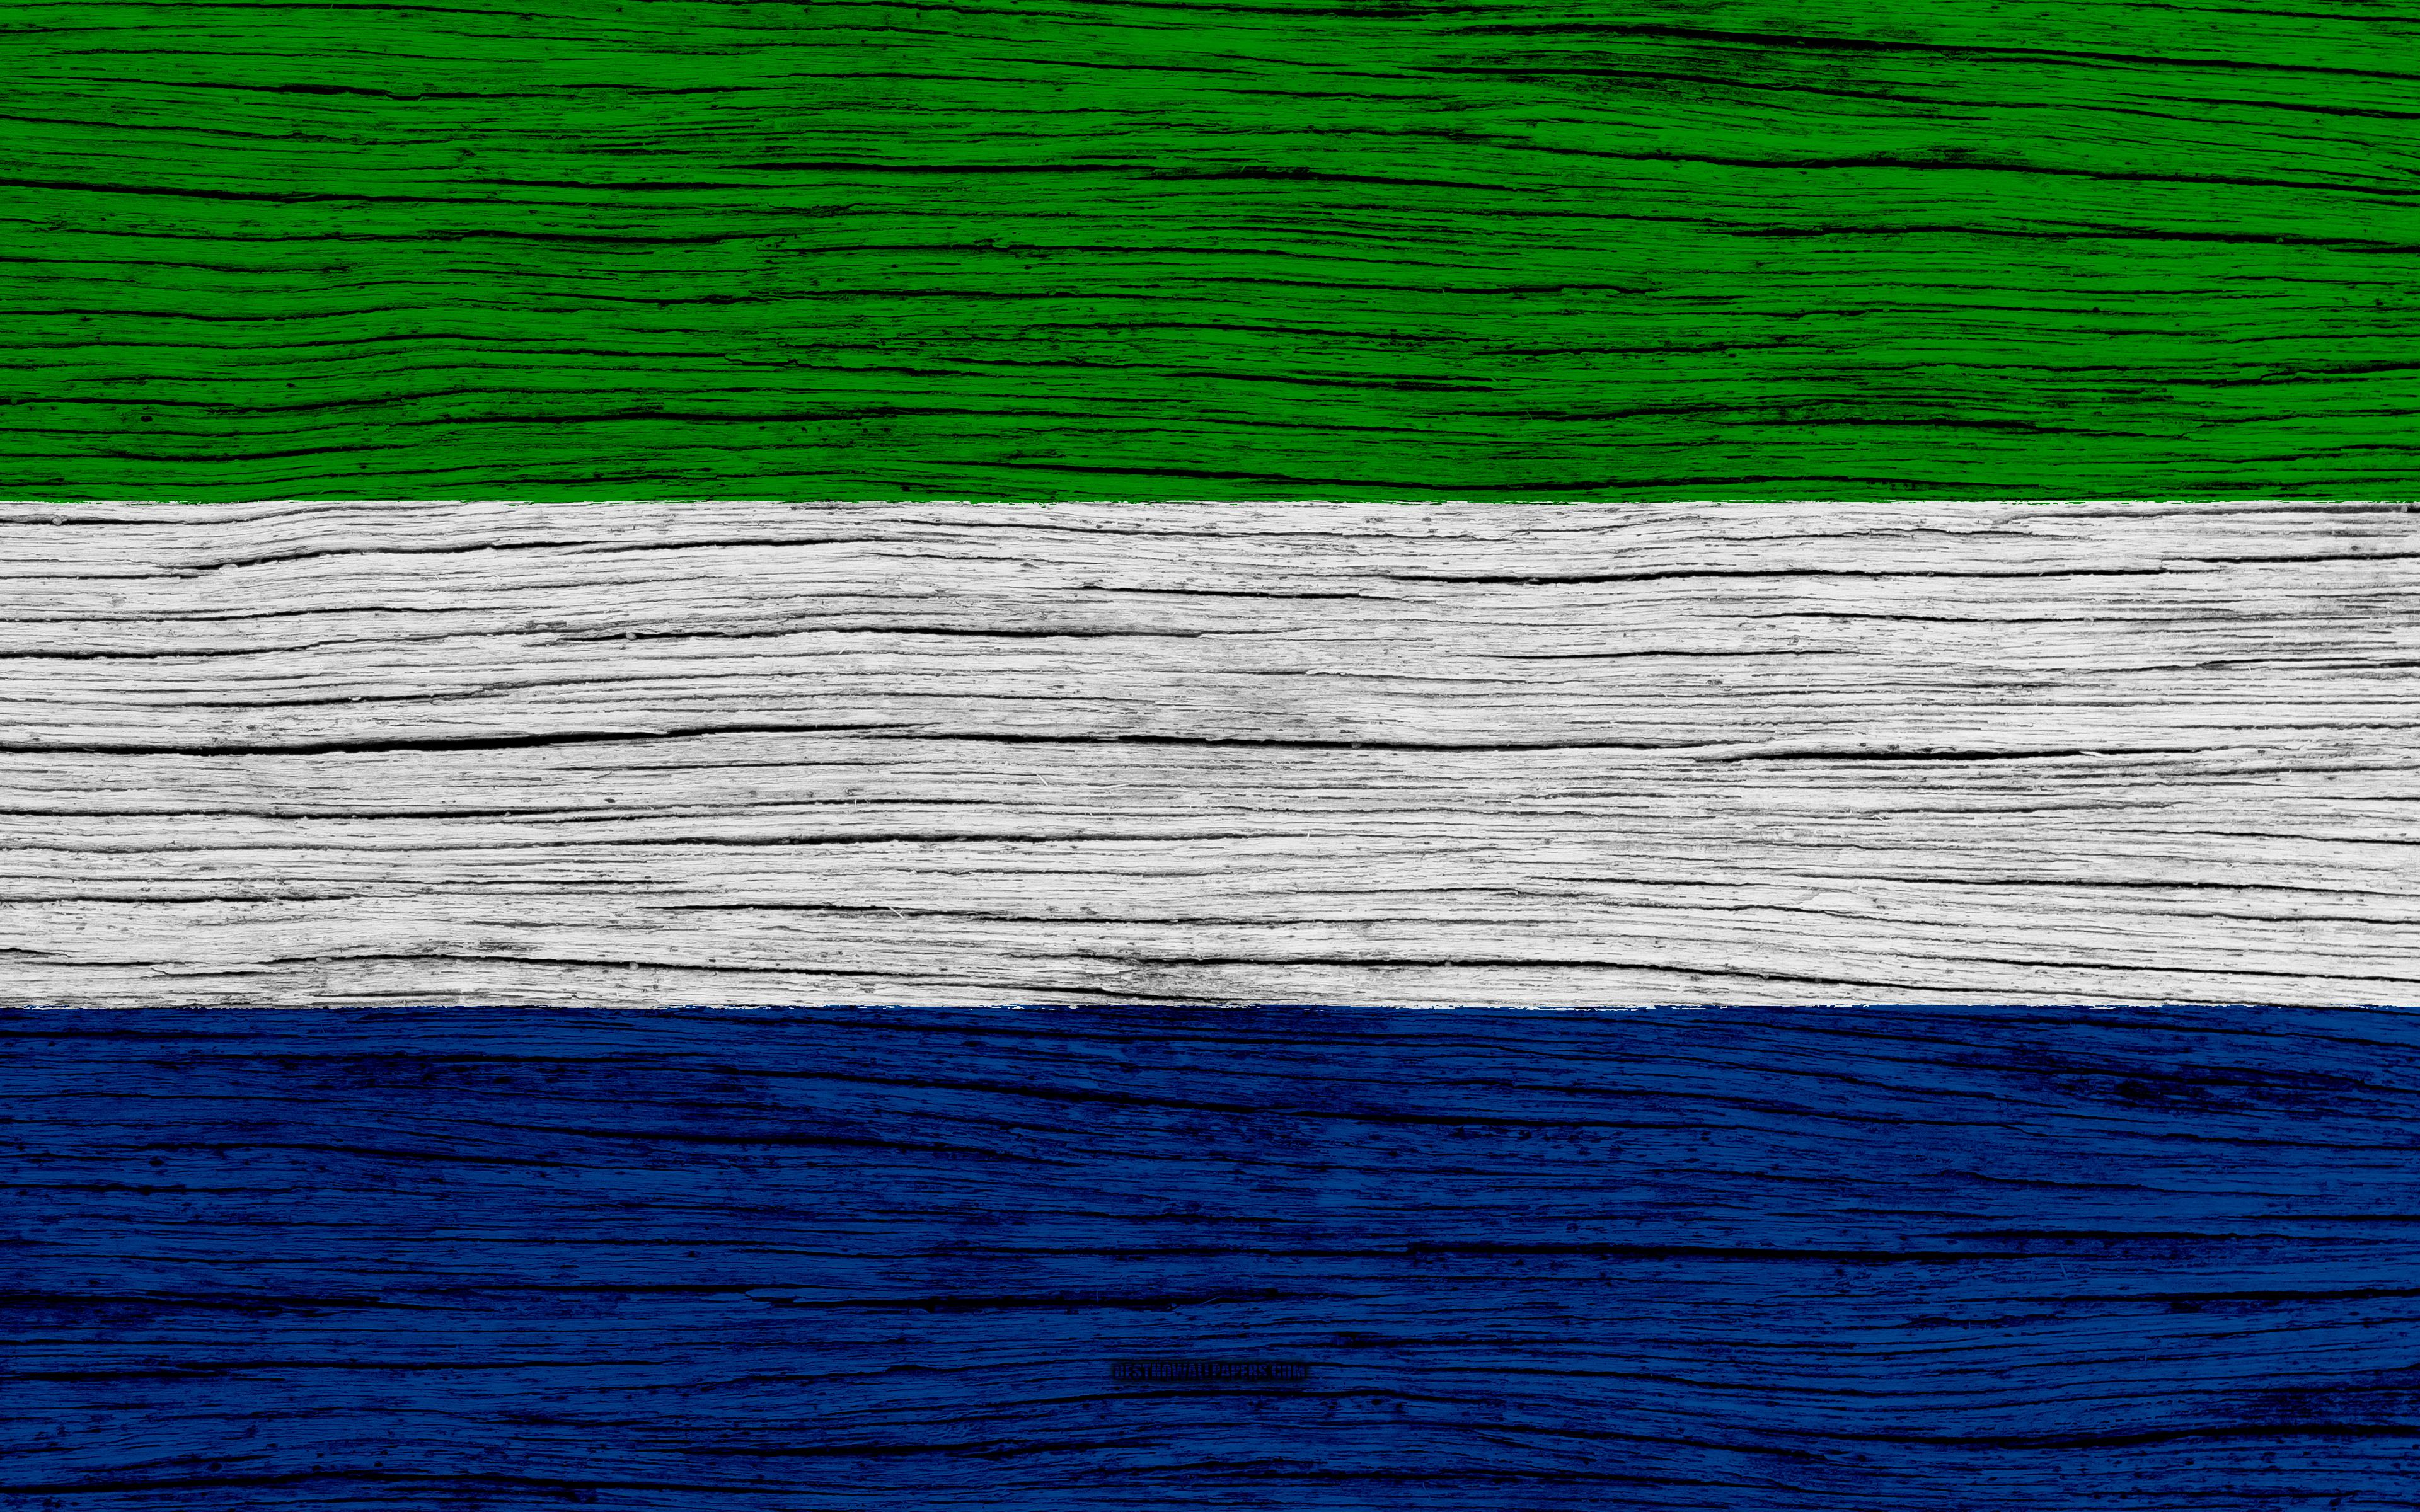 Download wallpapers Flag of Sierra Leone, 4k, Africa, wooden texture ...